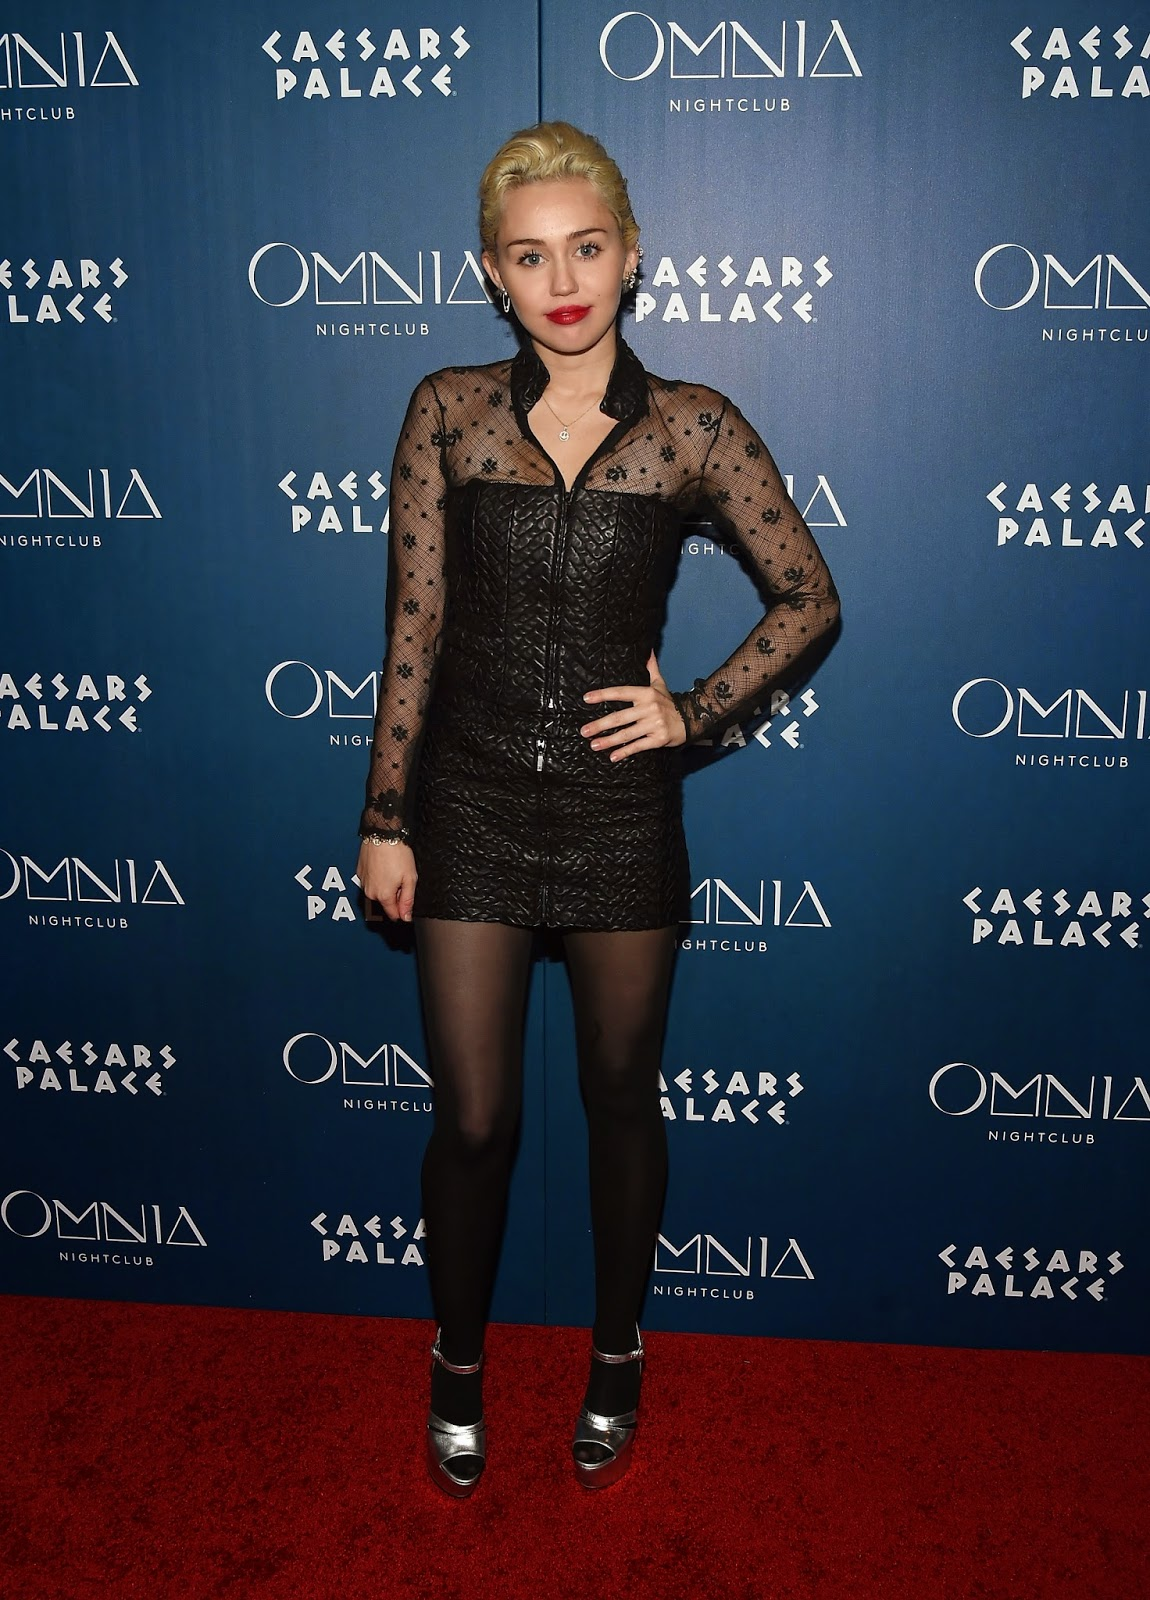 Singer, Actress @ Miley Cyrus - Omnia Nightclub at Caesars Palace in Las Vegas